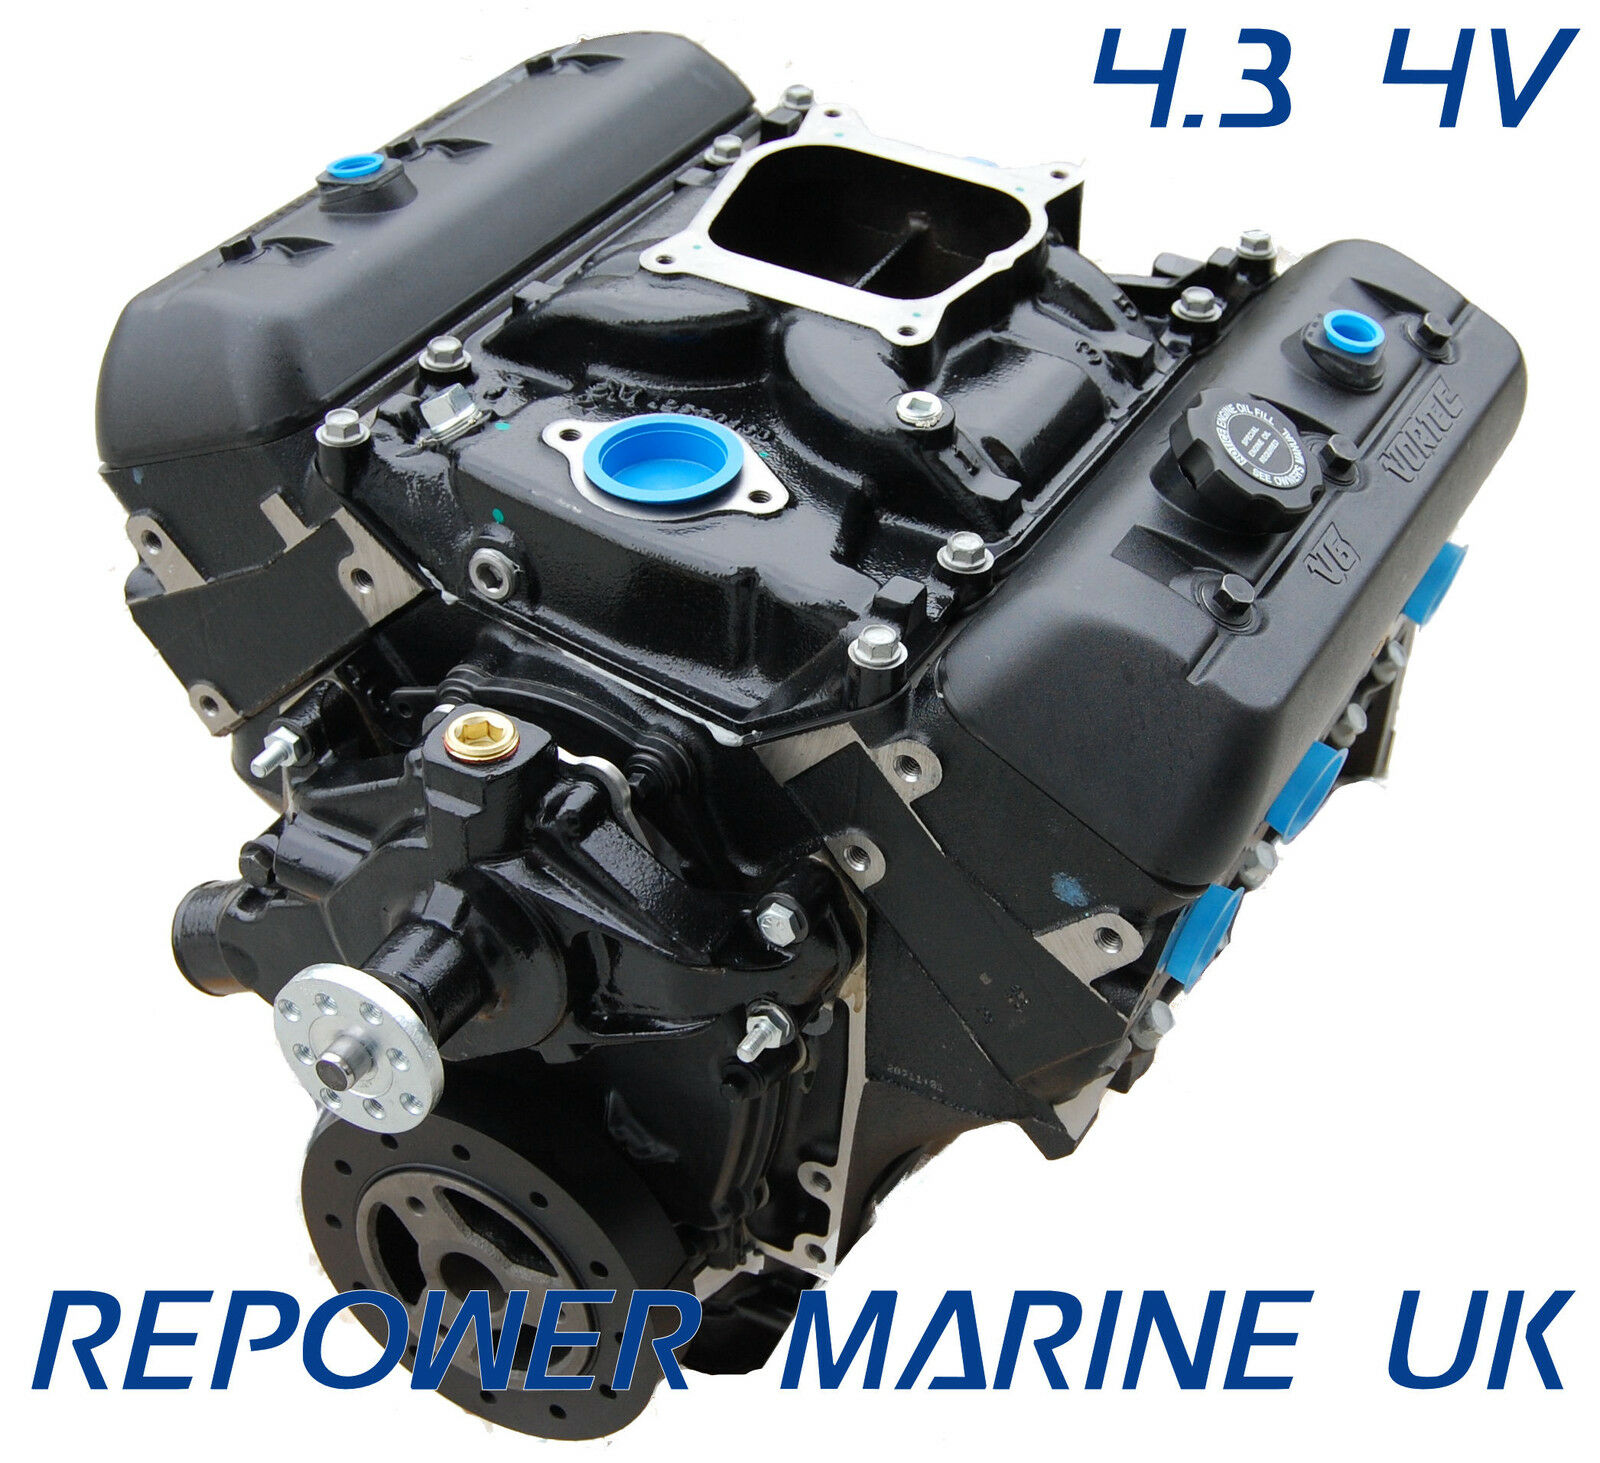 New 43l V6 Marine Engine Repower Mercruiser Volvo Penta Omc Description 3100 Enginejpg 1 Of See More